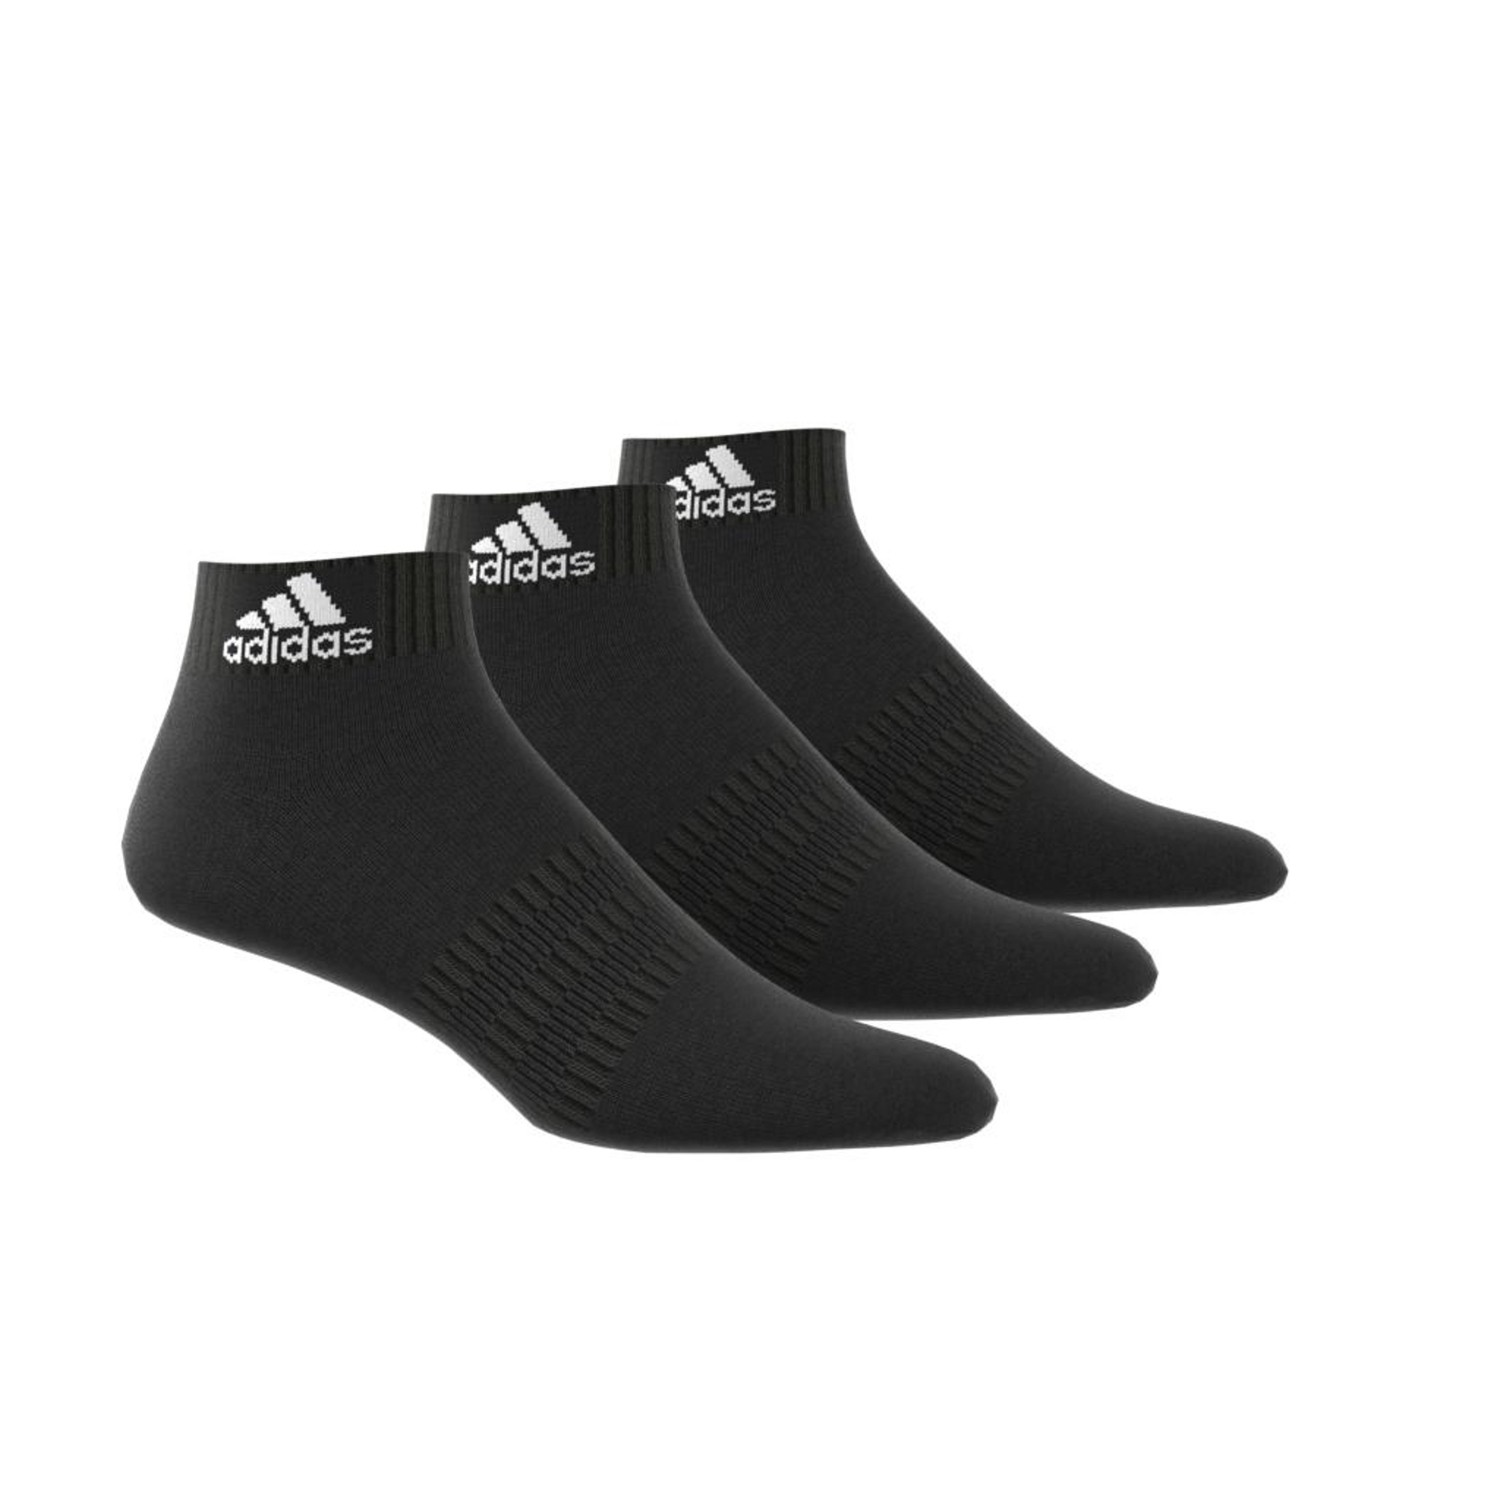 Adidas Cushioned Ankle Socks 3 Pack